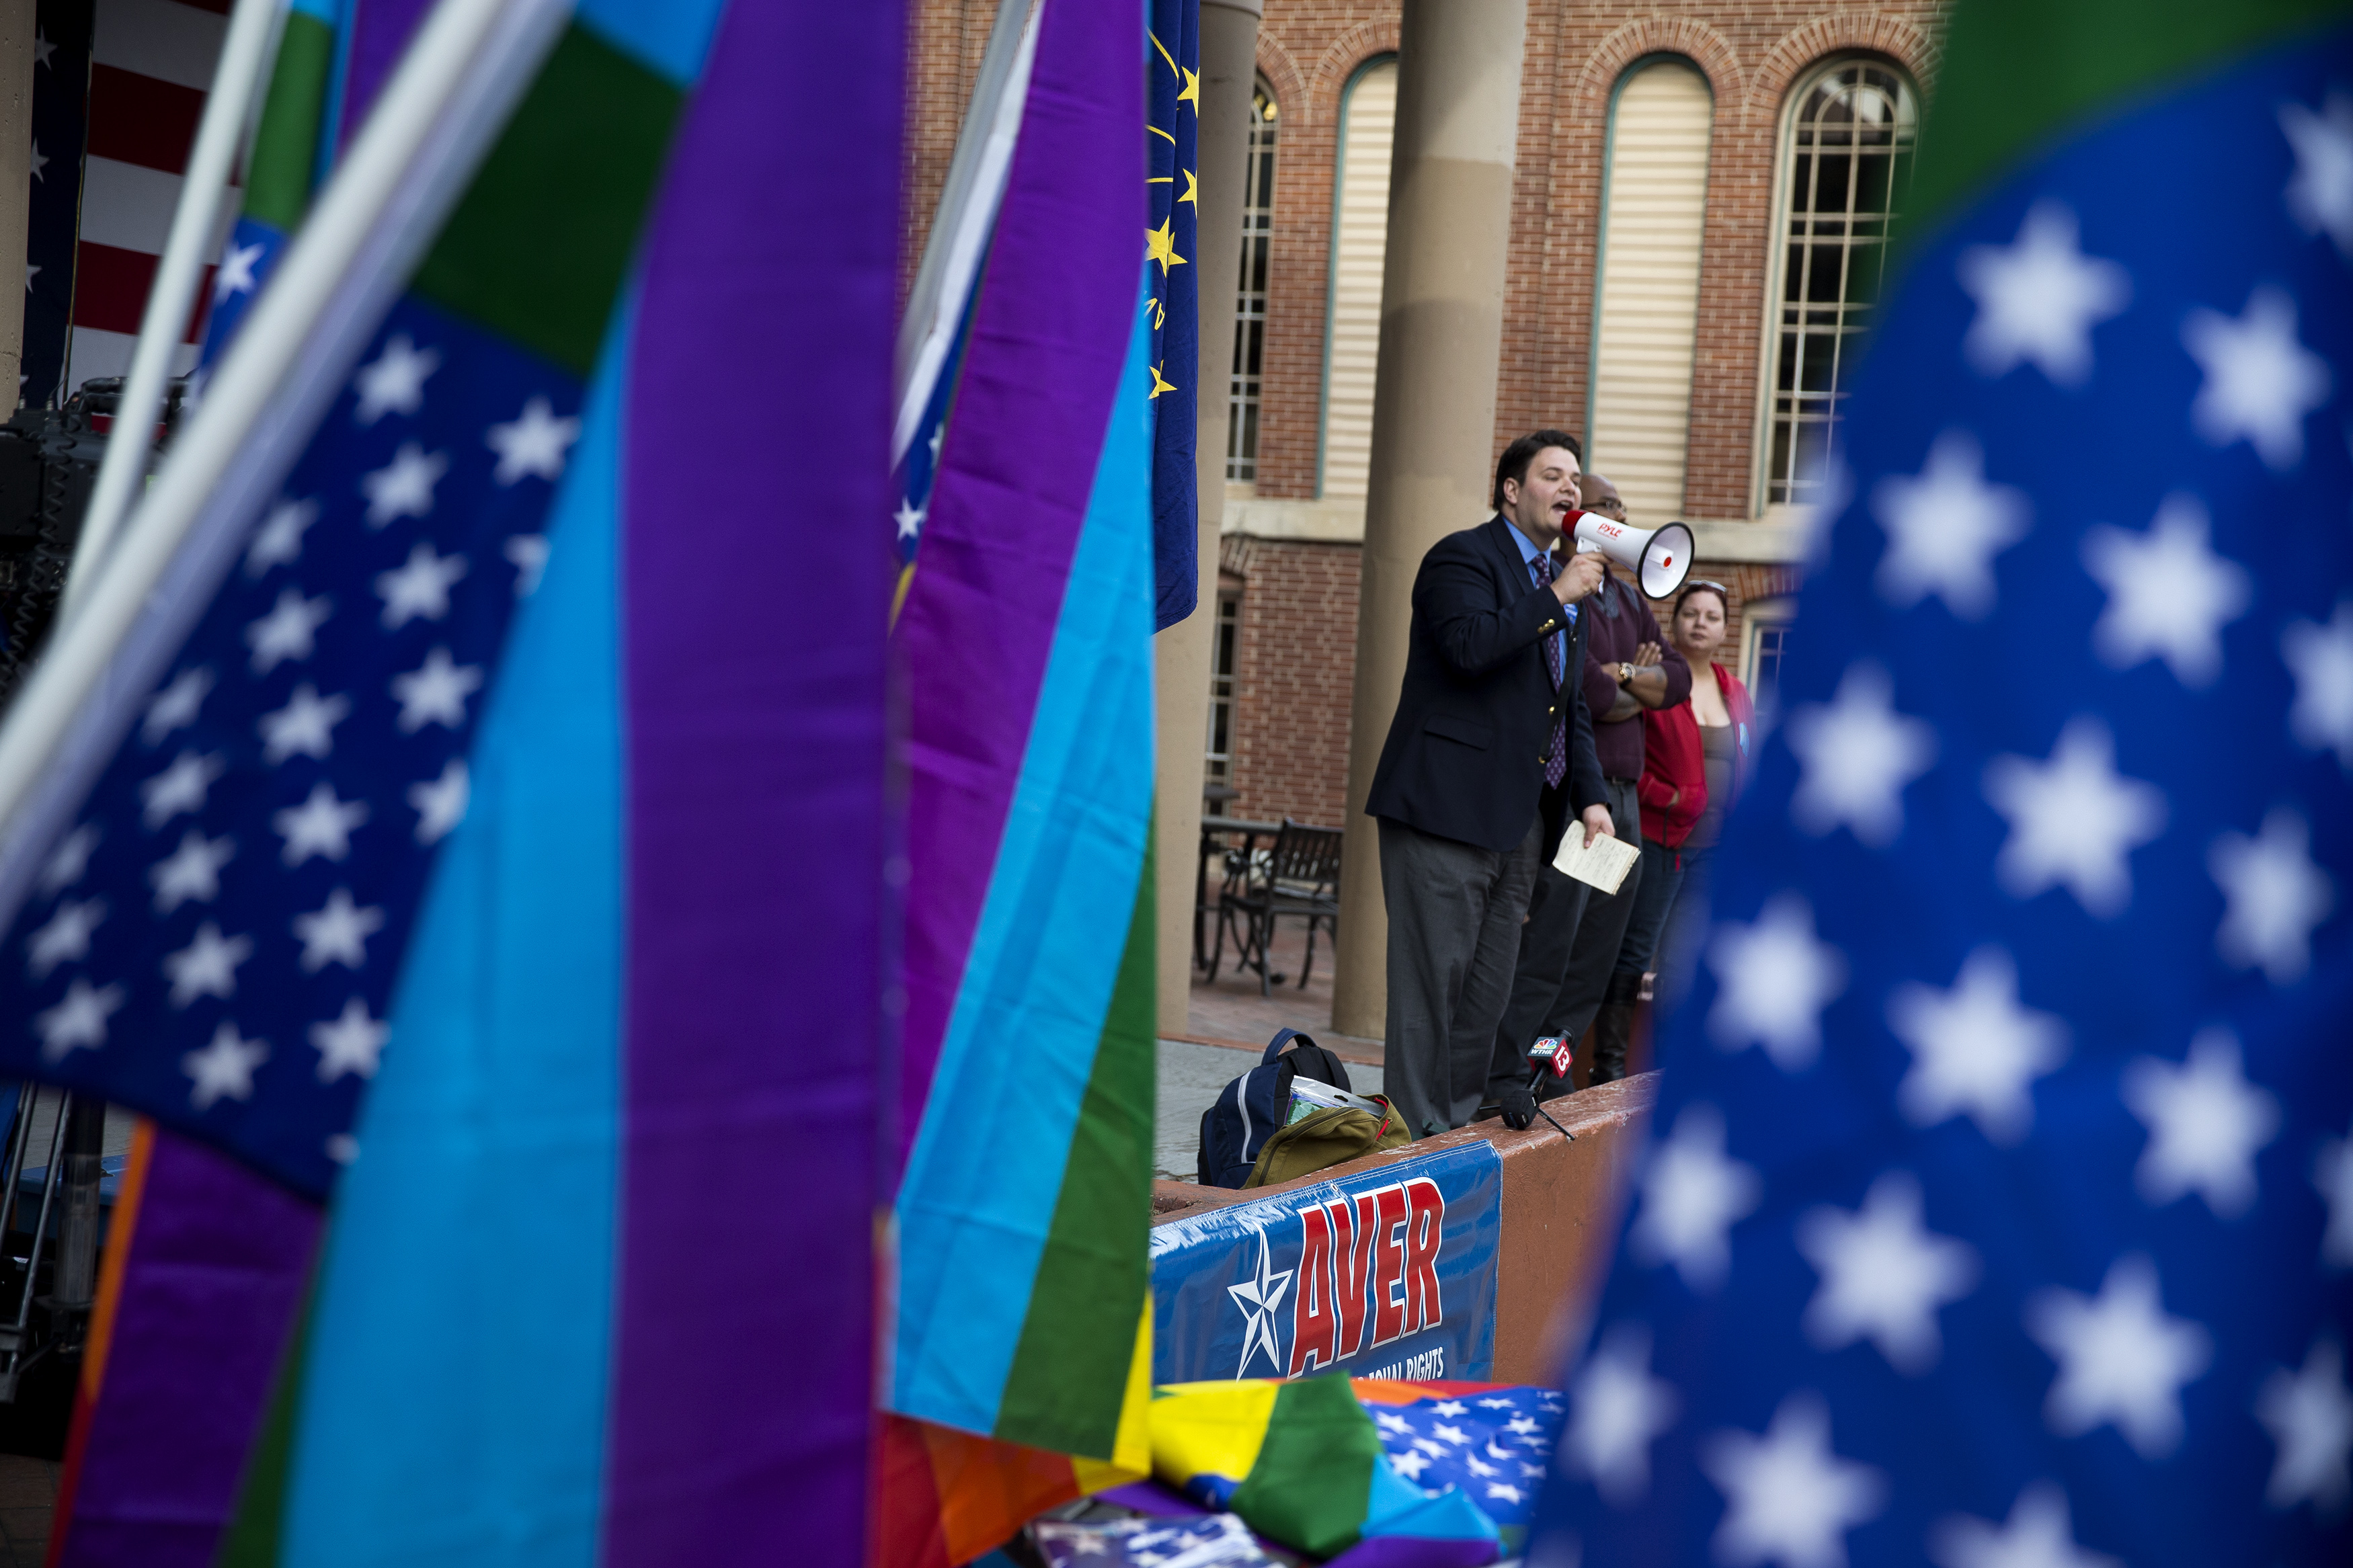 Demonstrator JD Ford speaks outside the City County Building on March 30, 2015 in Indianapolis, Indiana. (Getty)